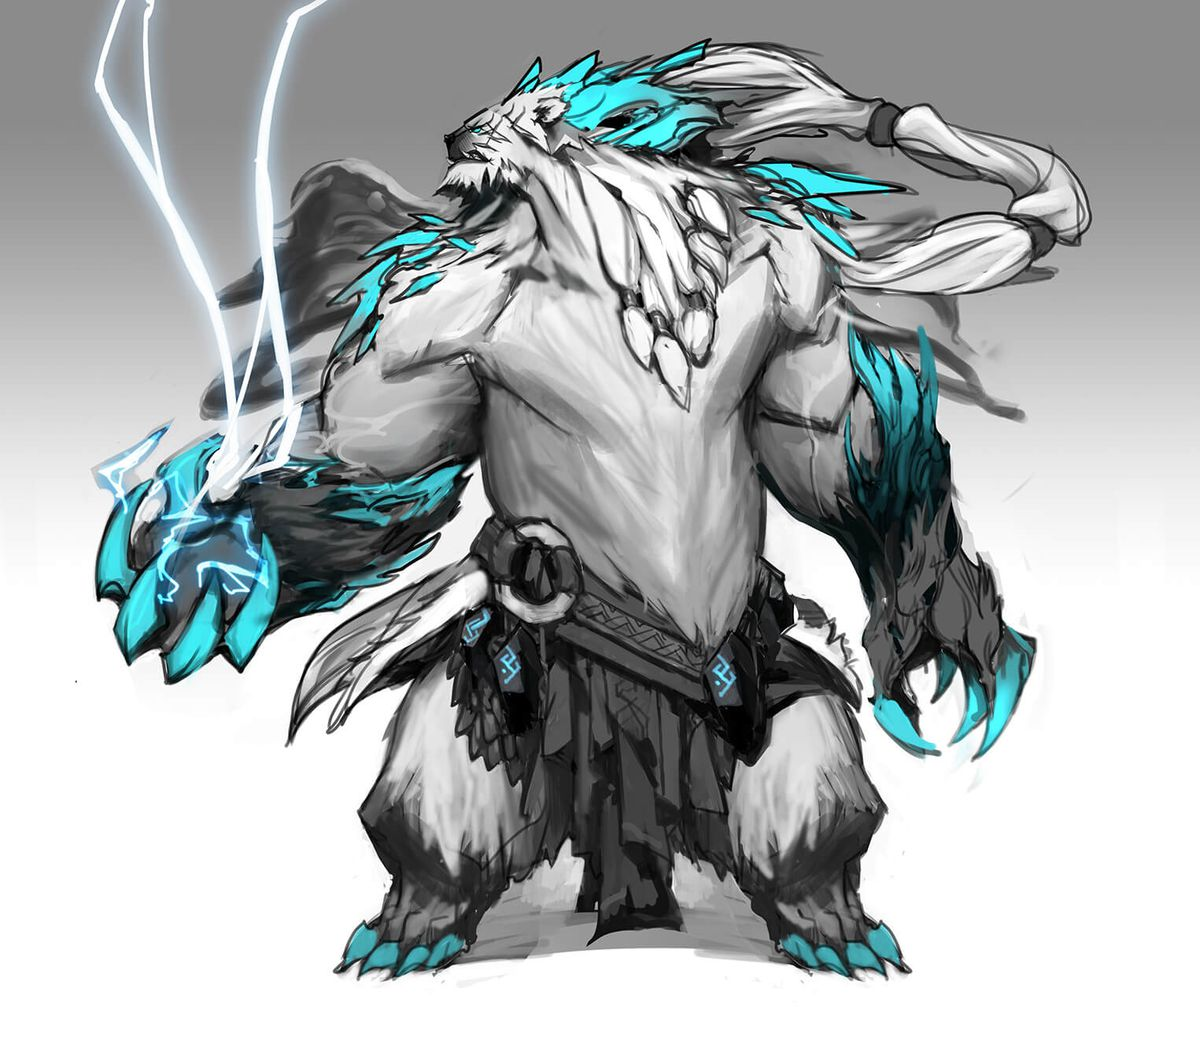 Volibear's new rework concept art, which features him with a ponytail and some neat ice armor